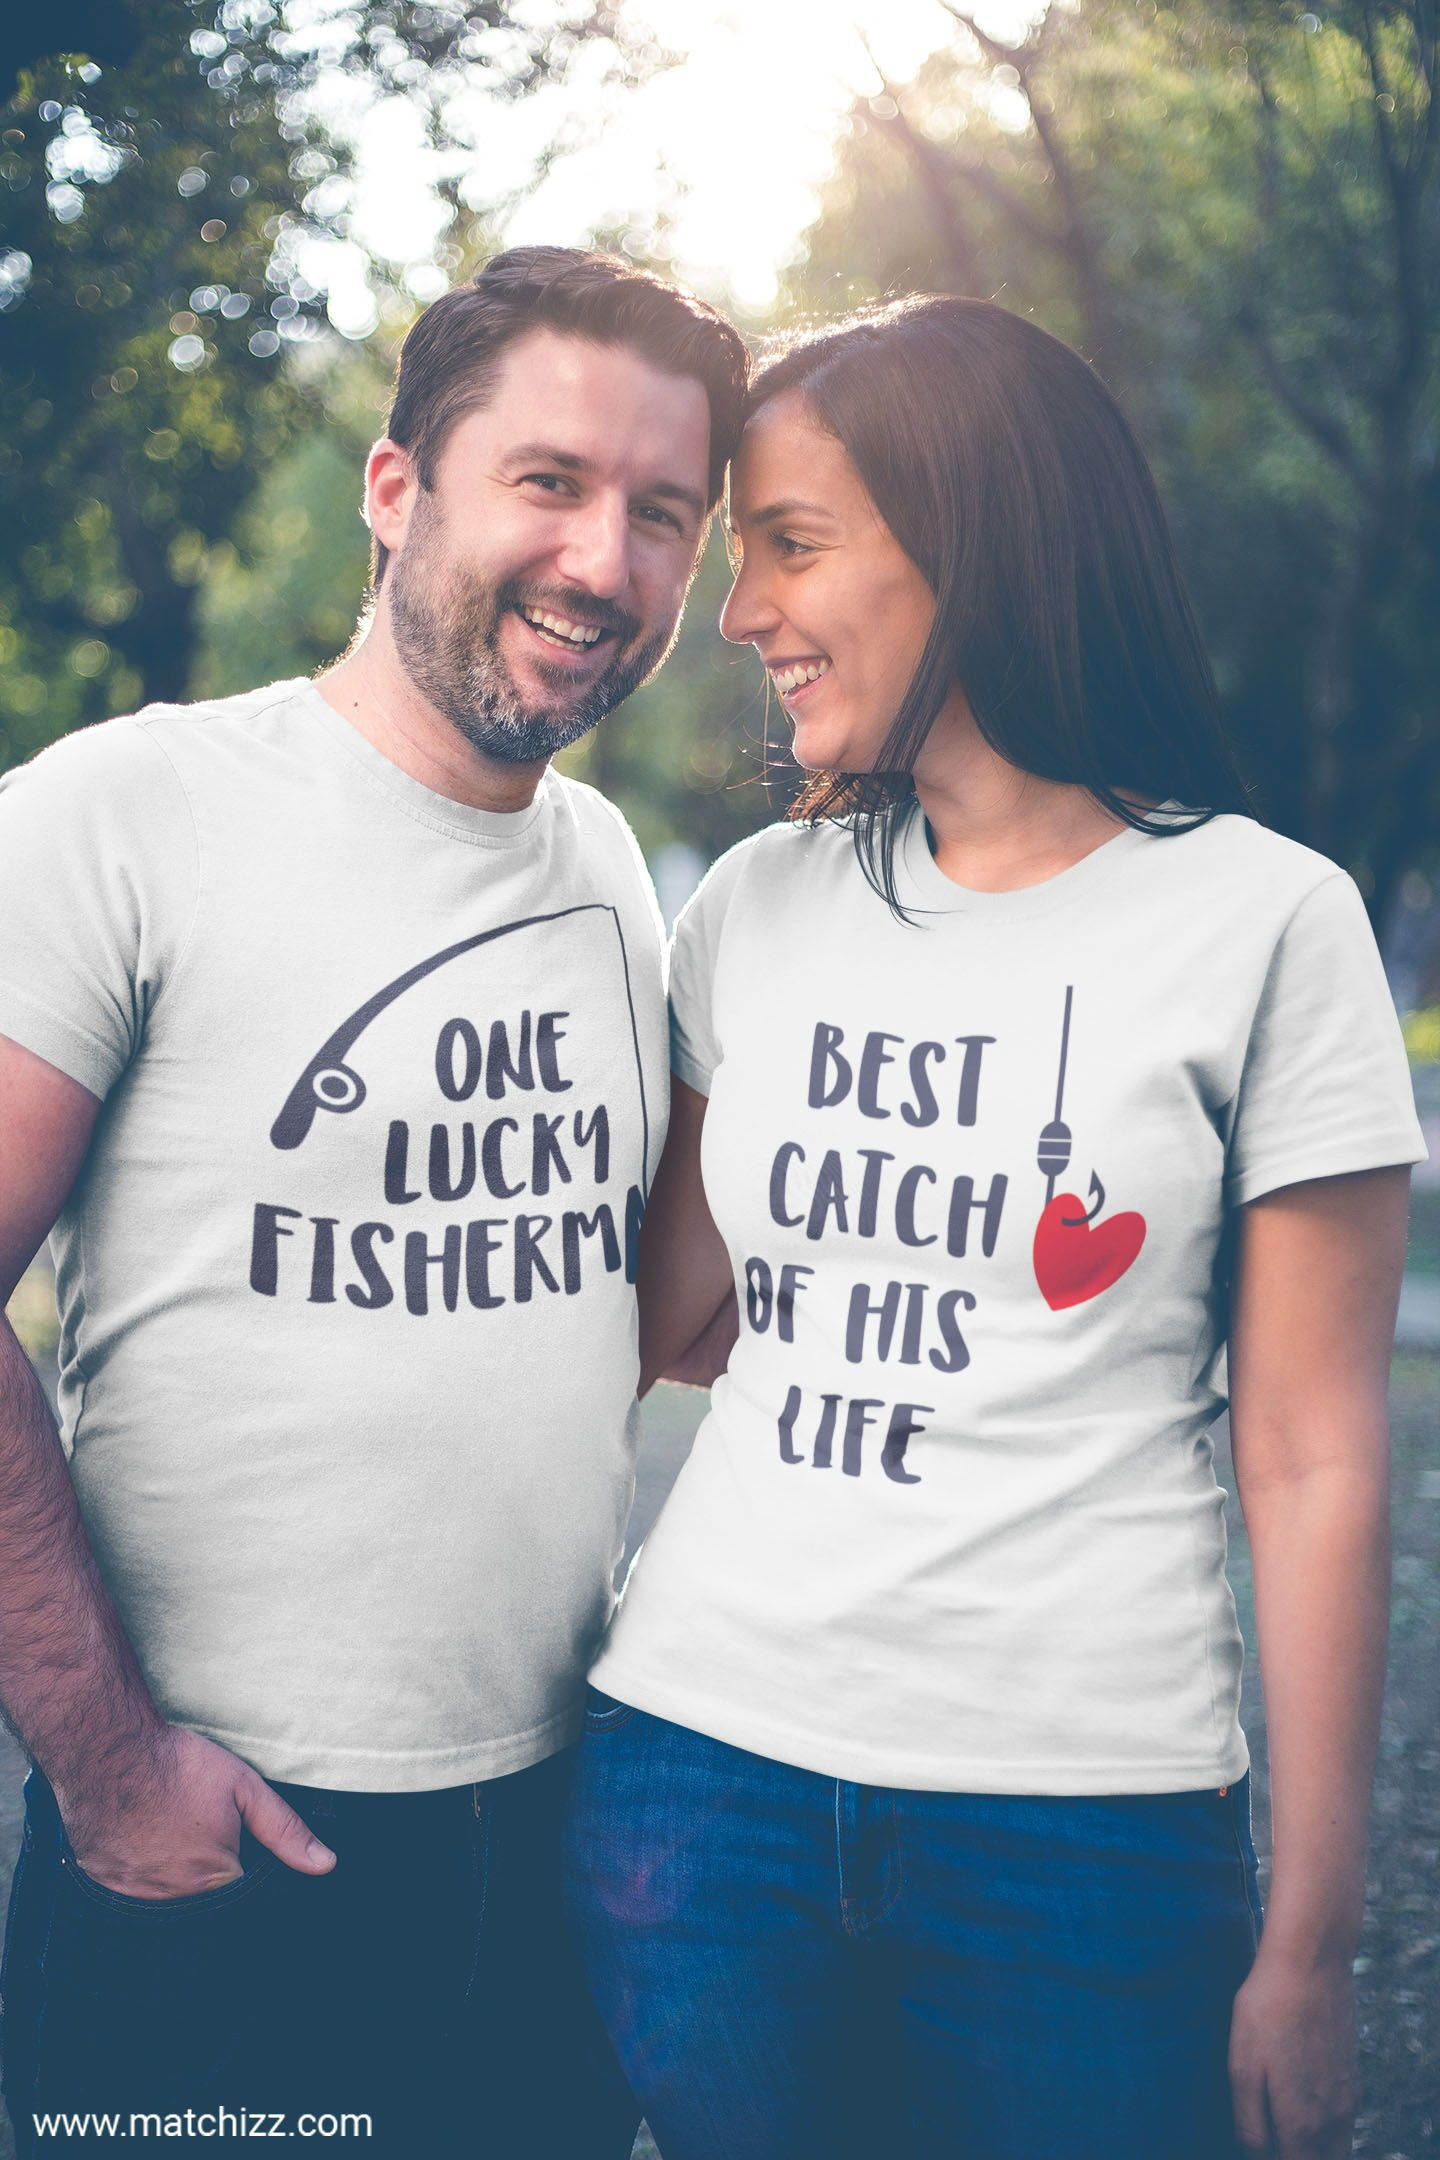 One Lucky Fisherman Best Catch of His Life Funny Fishing Shirts Fishing Couples TShirts Husband Wife T Shirt Valentines Day Gift image